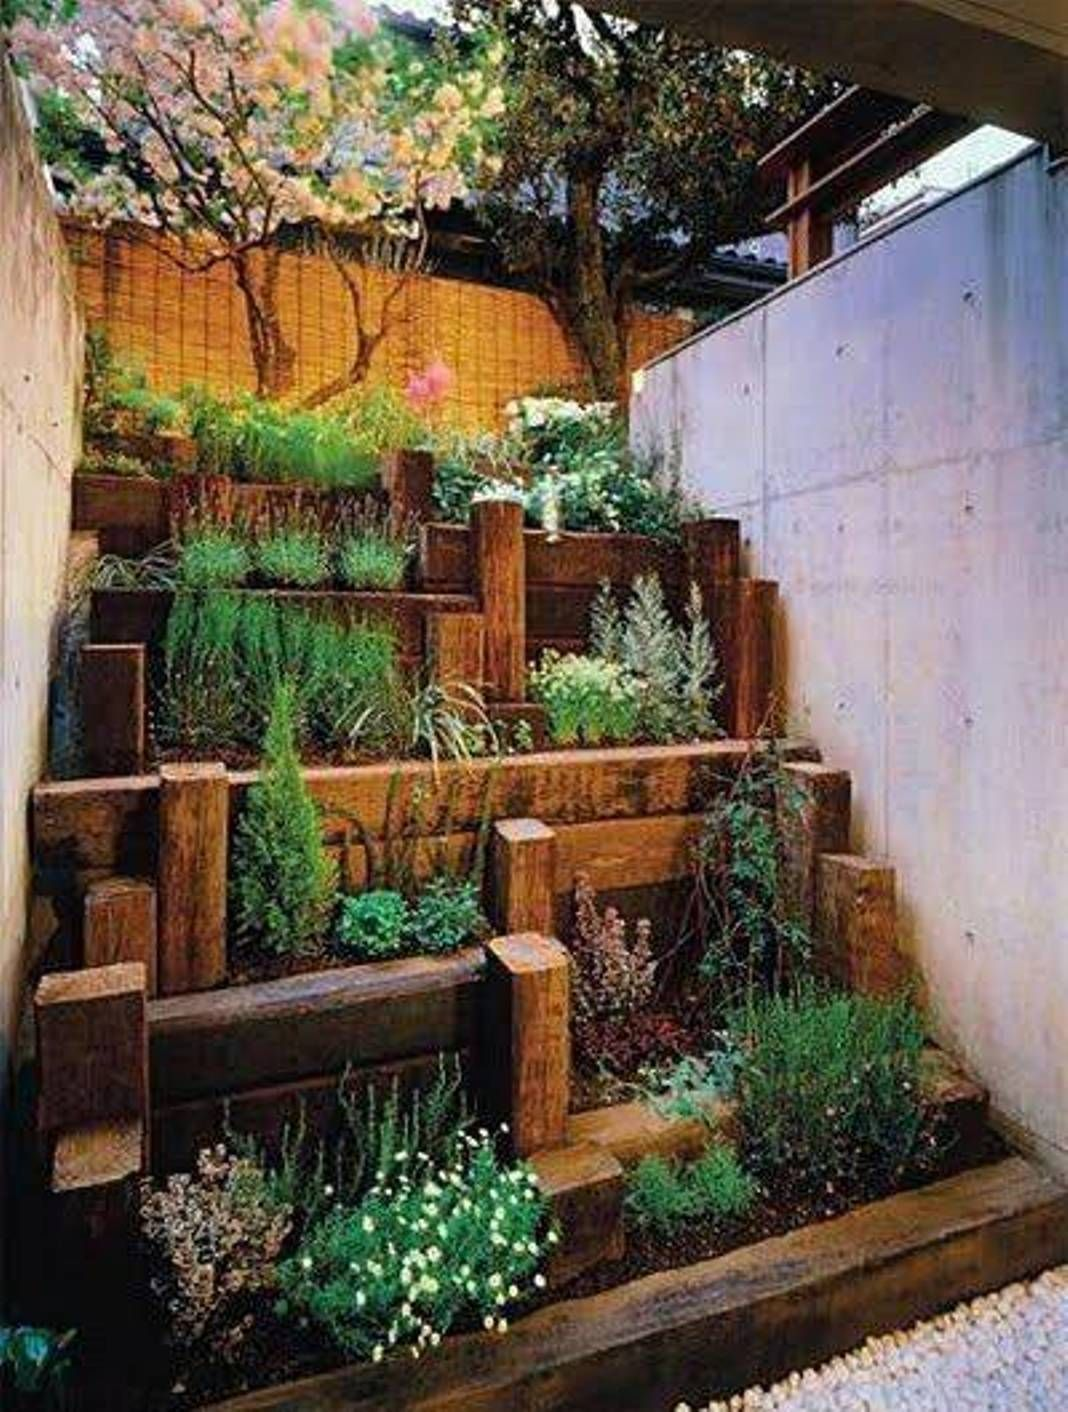 Amazing Small Garden Designs Most Beautiful Gardens Fresh Gallery Home  Design From Detail Page, Glubdubs. Gardening : Amazing Small Garden Designs  Most ... Part 28